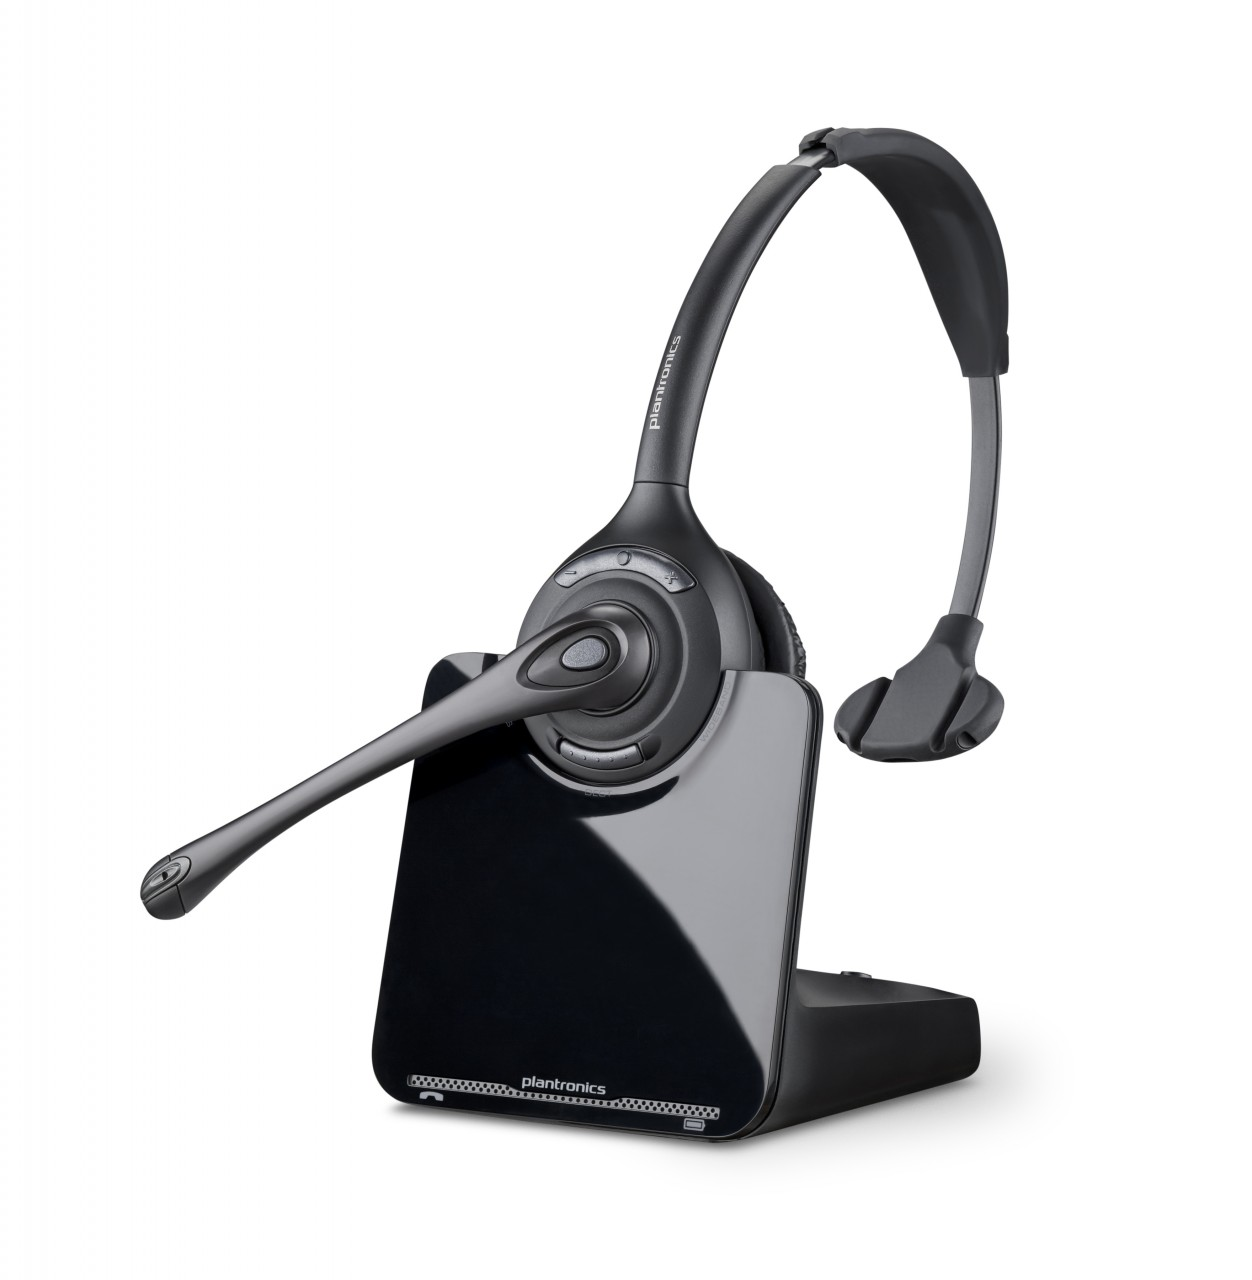 plantronics_cordless_headset_mitel_cs510.jpg